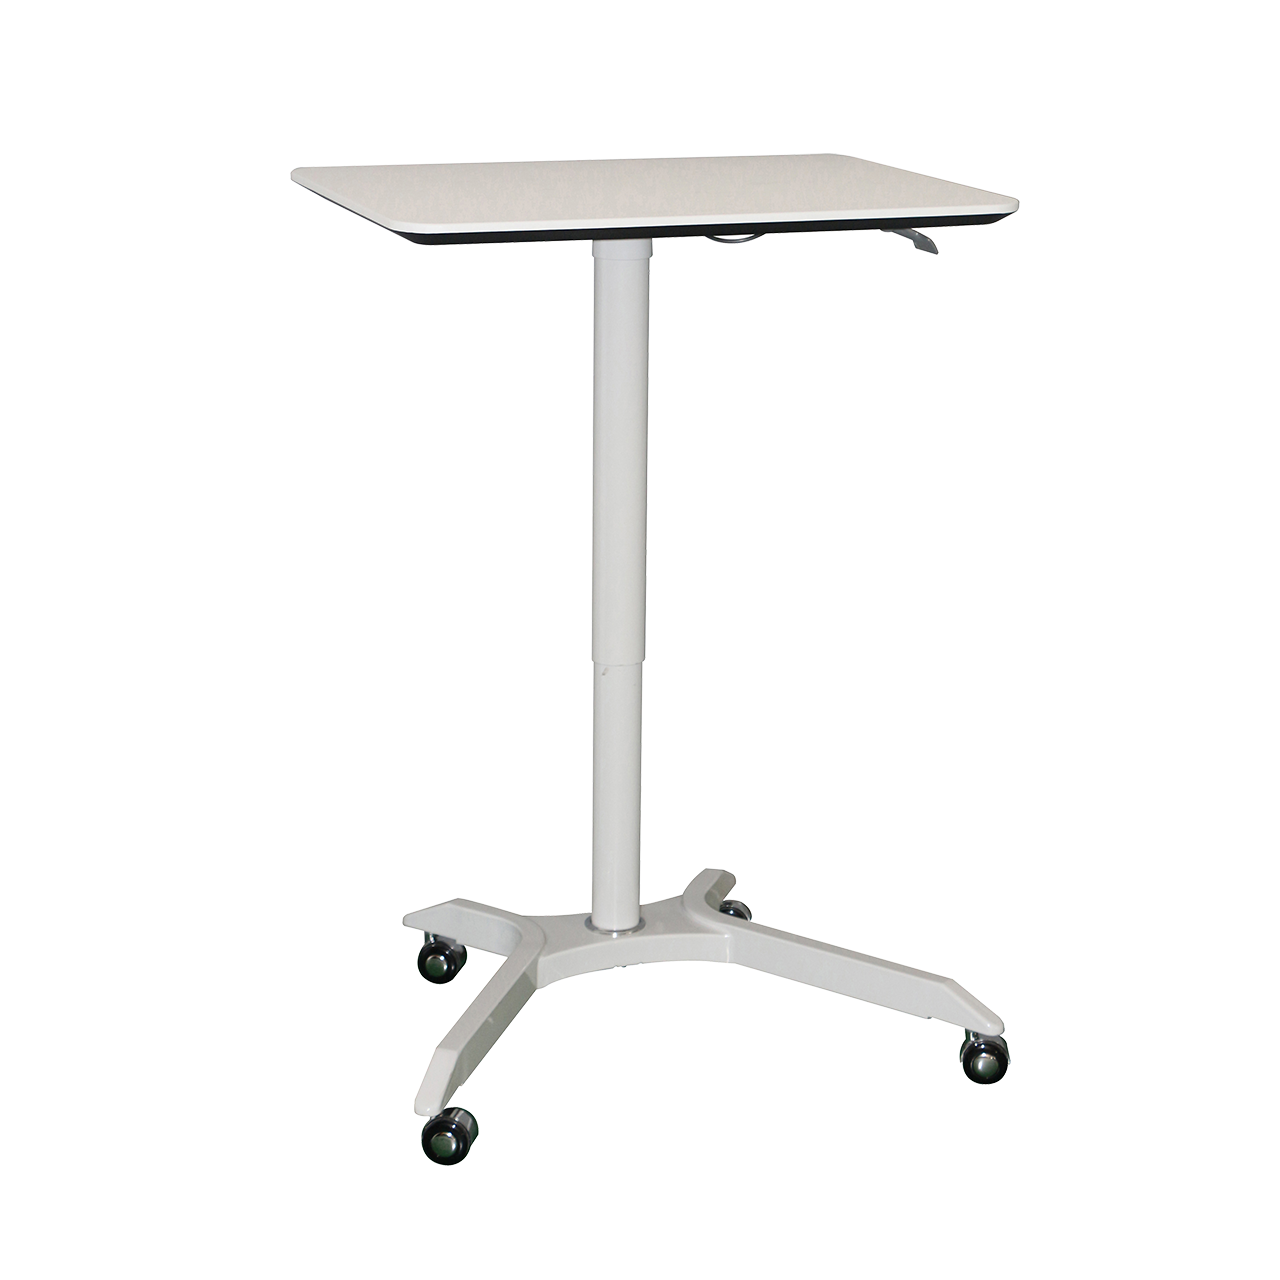 LS_LT Gas Lift Height Adjustable Laptop Table Tall